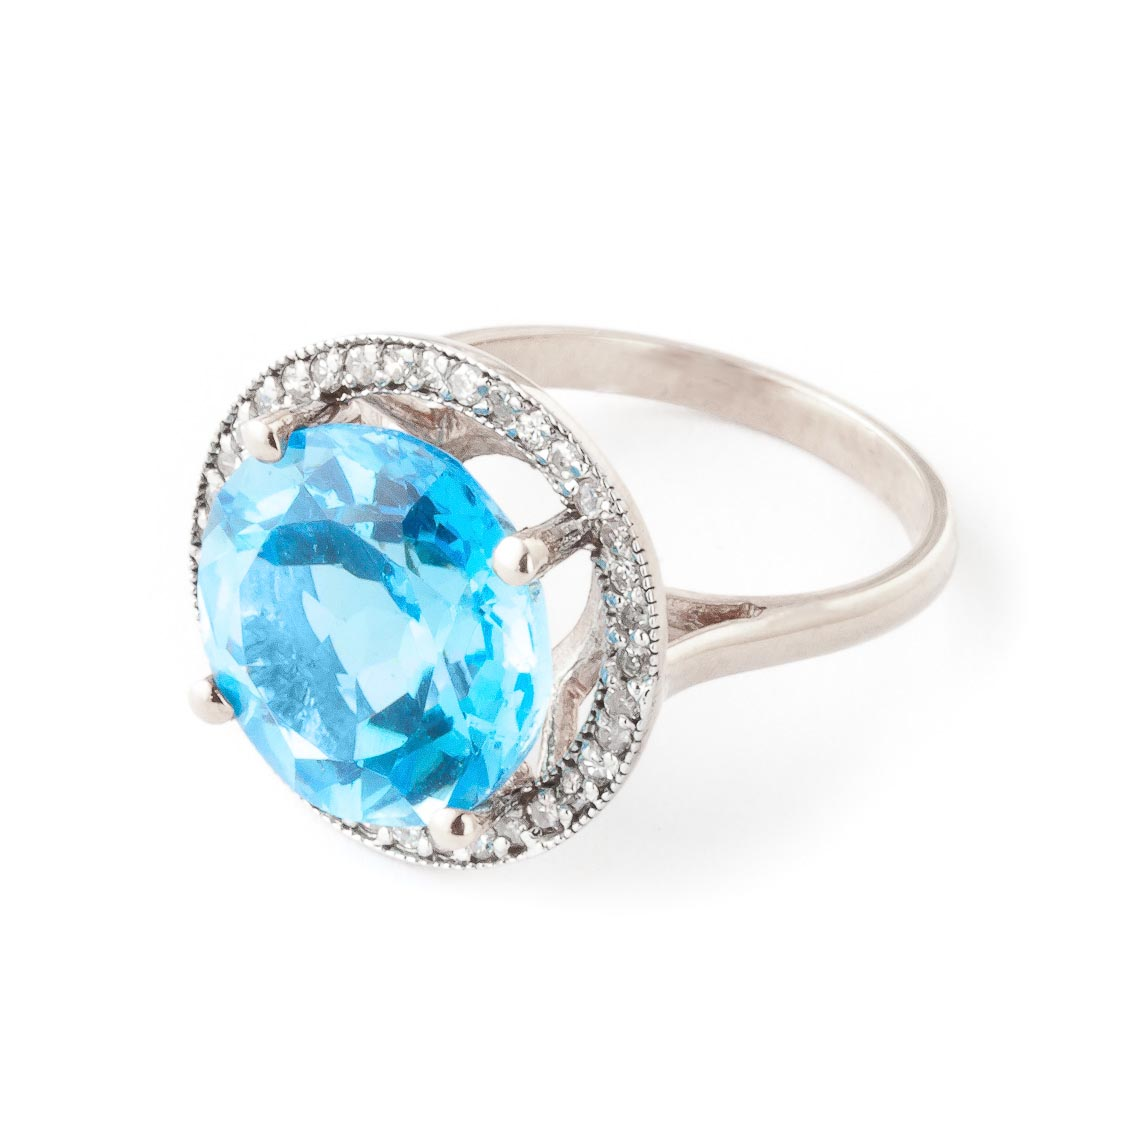 Blue Topaz Halo Ring 8 ctw in 9ct White Gold